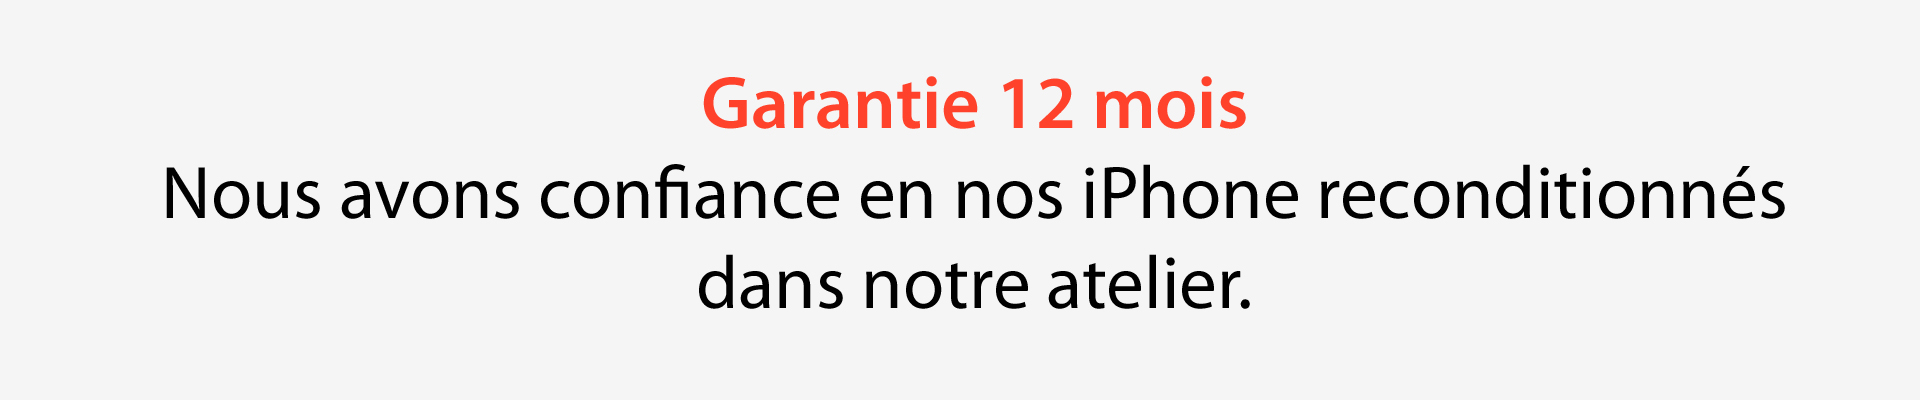 garantie 12 mois iPhone SE recondtionné